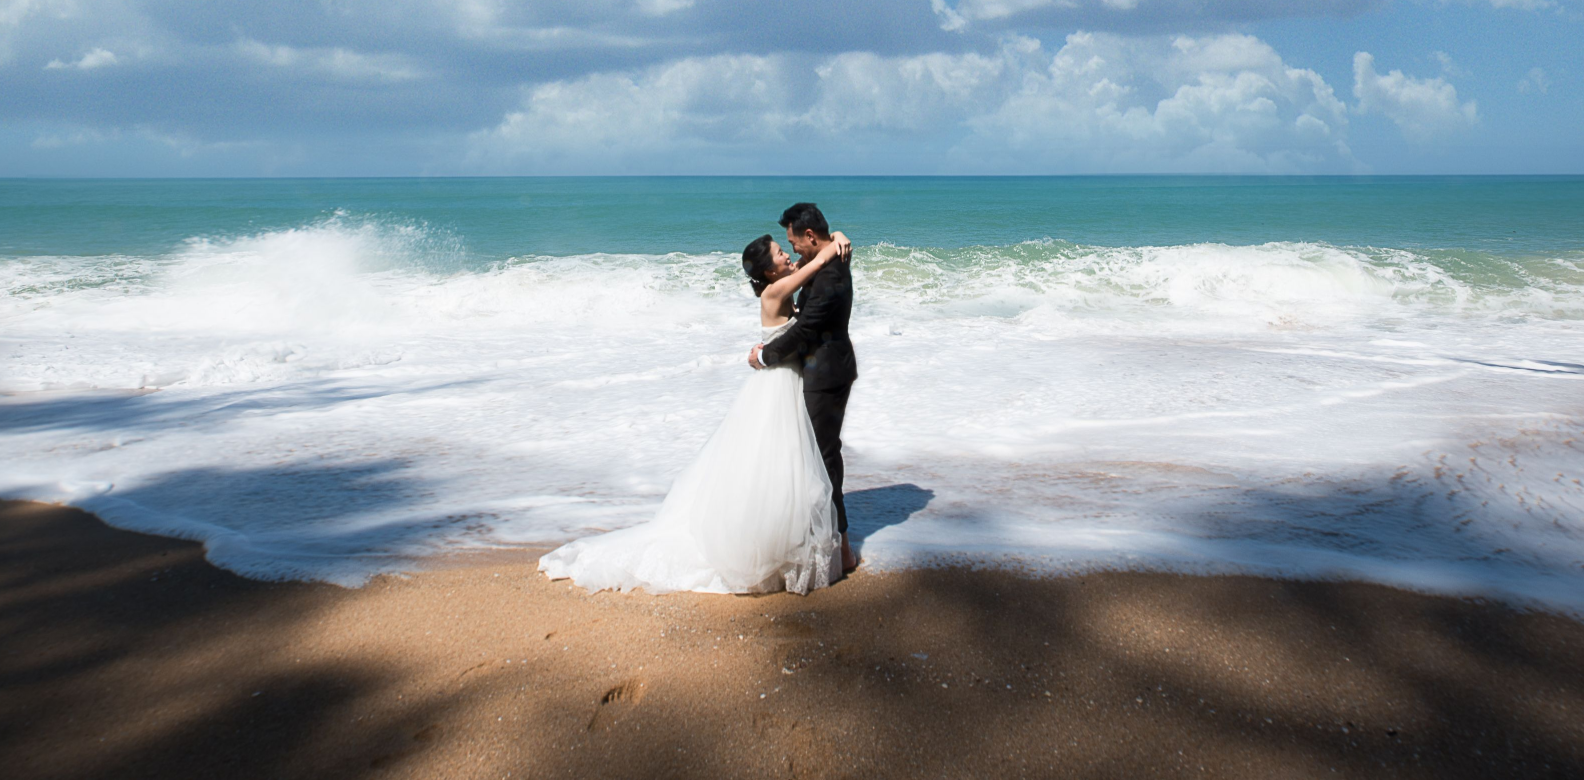 Ask The Expert What Do I Need To Prepare For My Destination Wedding Shoot